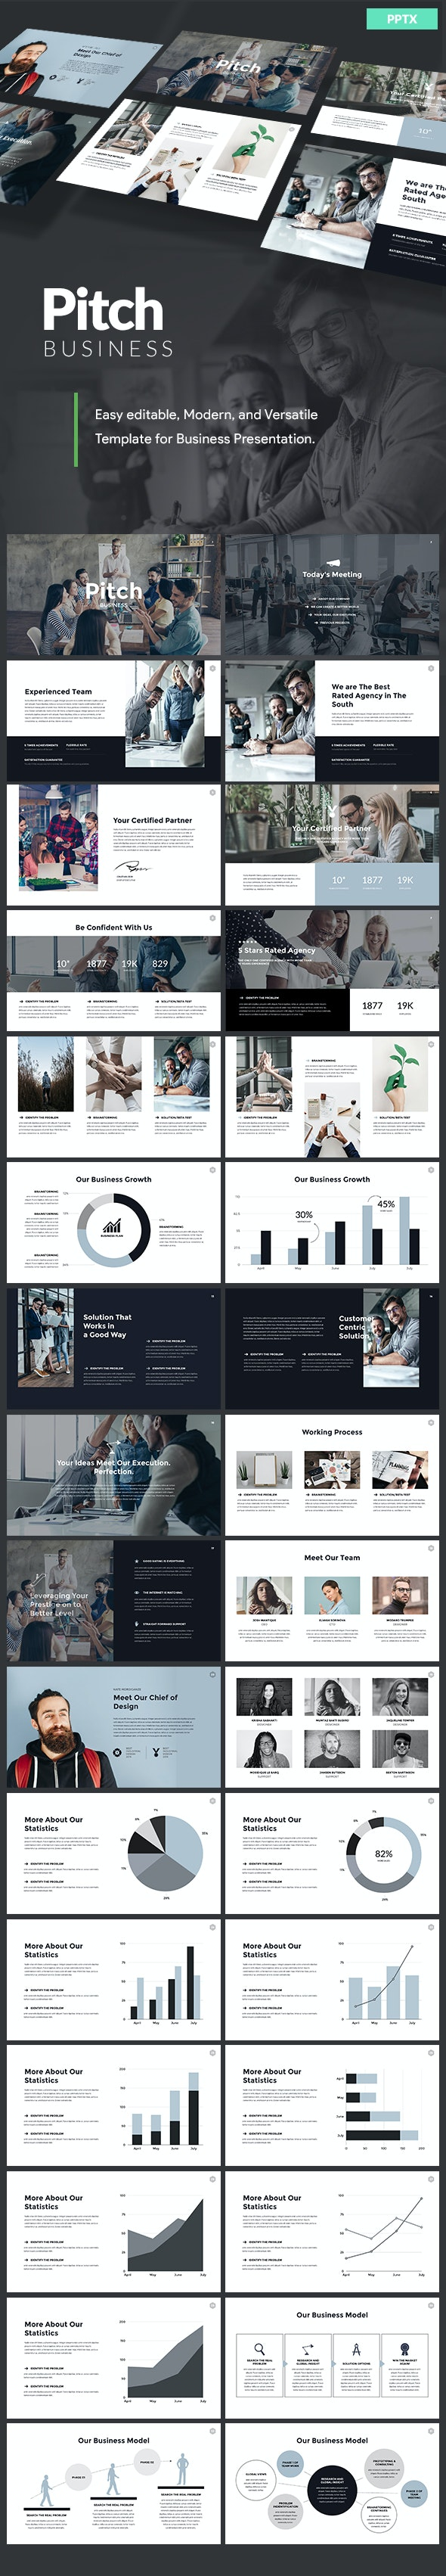 Business Pitch - Powerpoint Template - PowerPoint Templates Presentation Templates